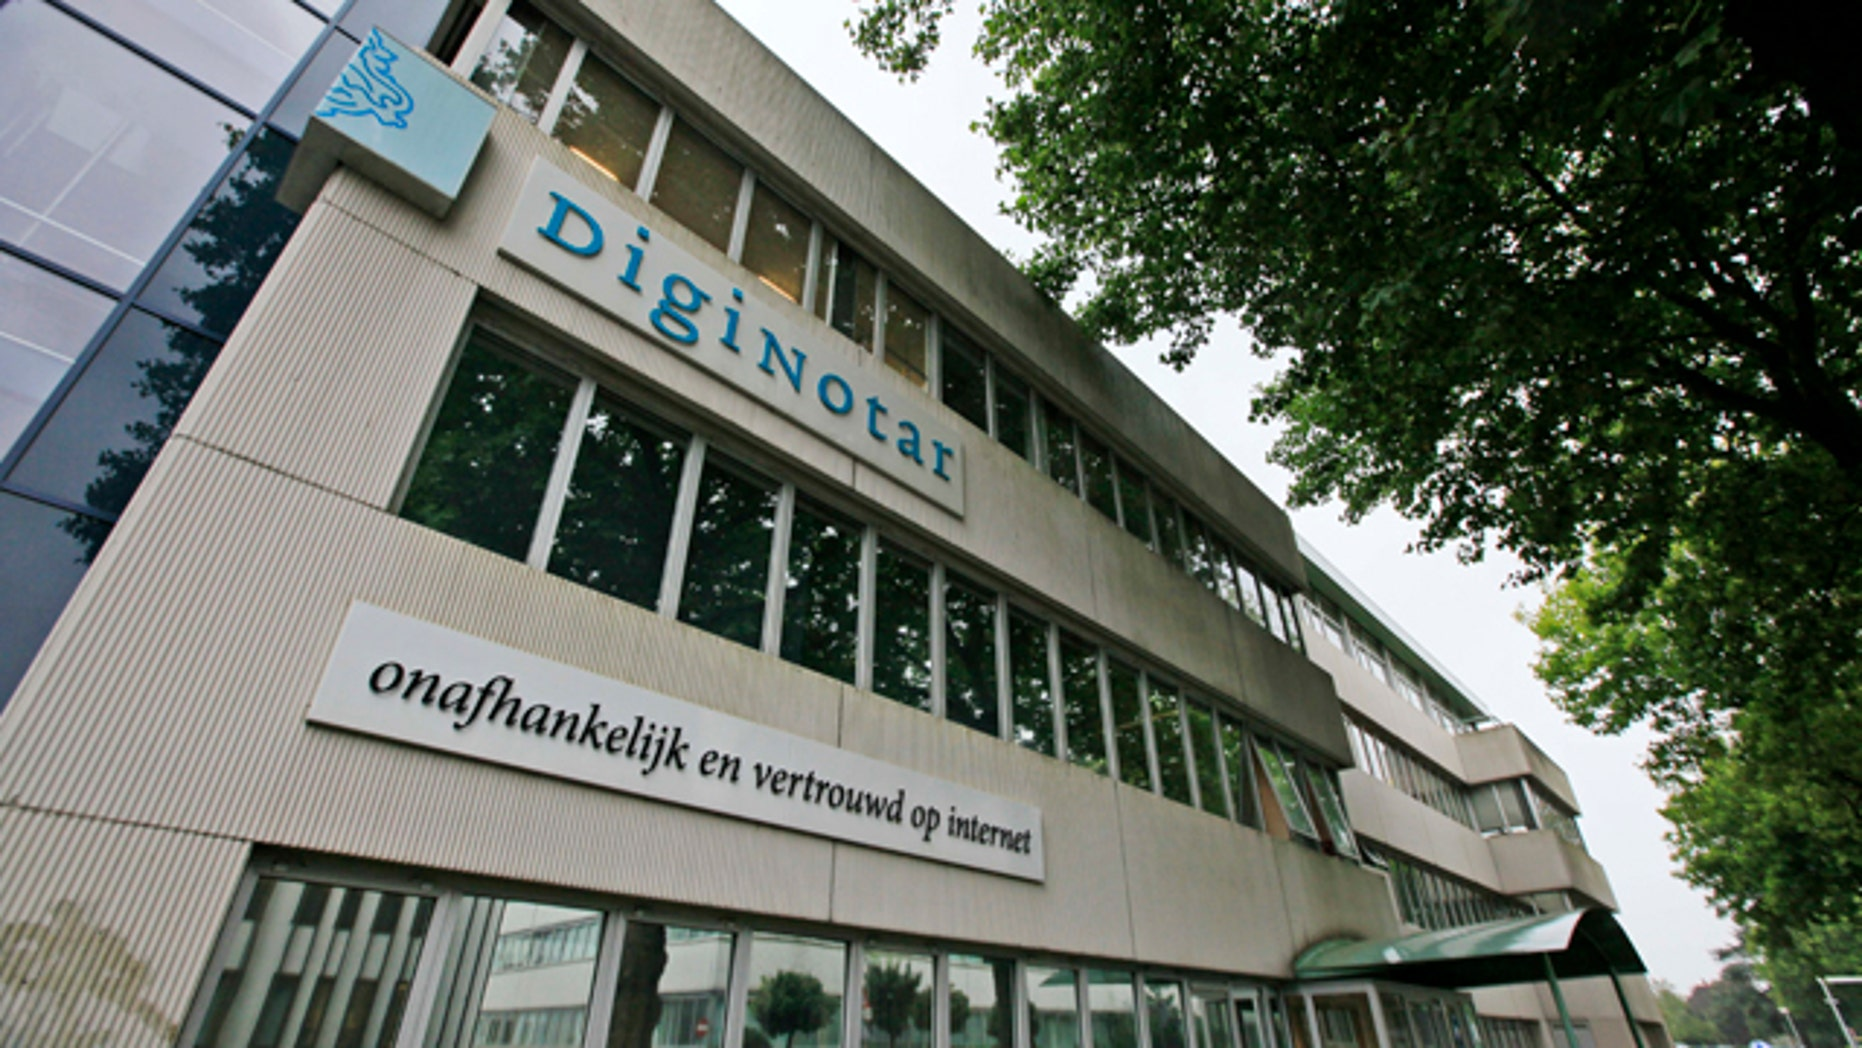 Sept. 6, 2011: Exterior view of the building housing Internet security firm DigiNotar in Beverwijk, north-western Netherlands. Dutch prosecutors say they are investigating DigiNotar for possible criminal negligence after it was slow to disclose a hacking incident that compromised dozens of websites and likely helped the Iranian government spy on dissidents for a month.